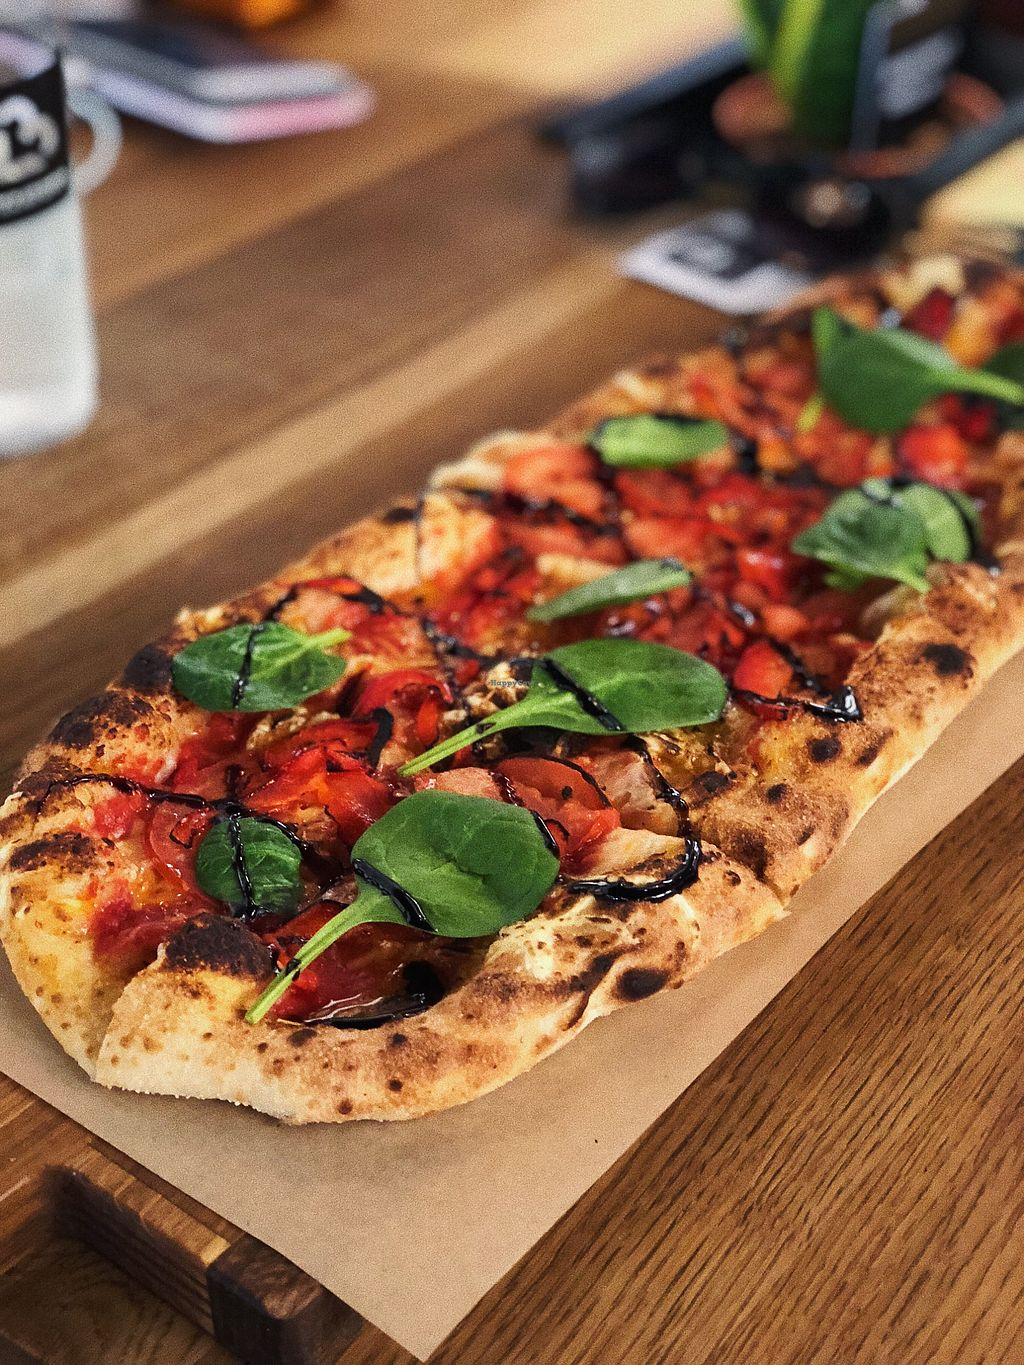 """Photo of Pizzatopia  by <a href=""""/members/profile/elineklund"""">elineklund</a> <br/>Quick, creative and delicious! <br/> April 14, 2018  - <a href='/contact/abuse/image/97708/385933'>Report</a>"""